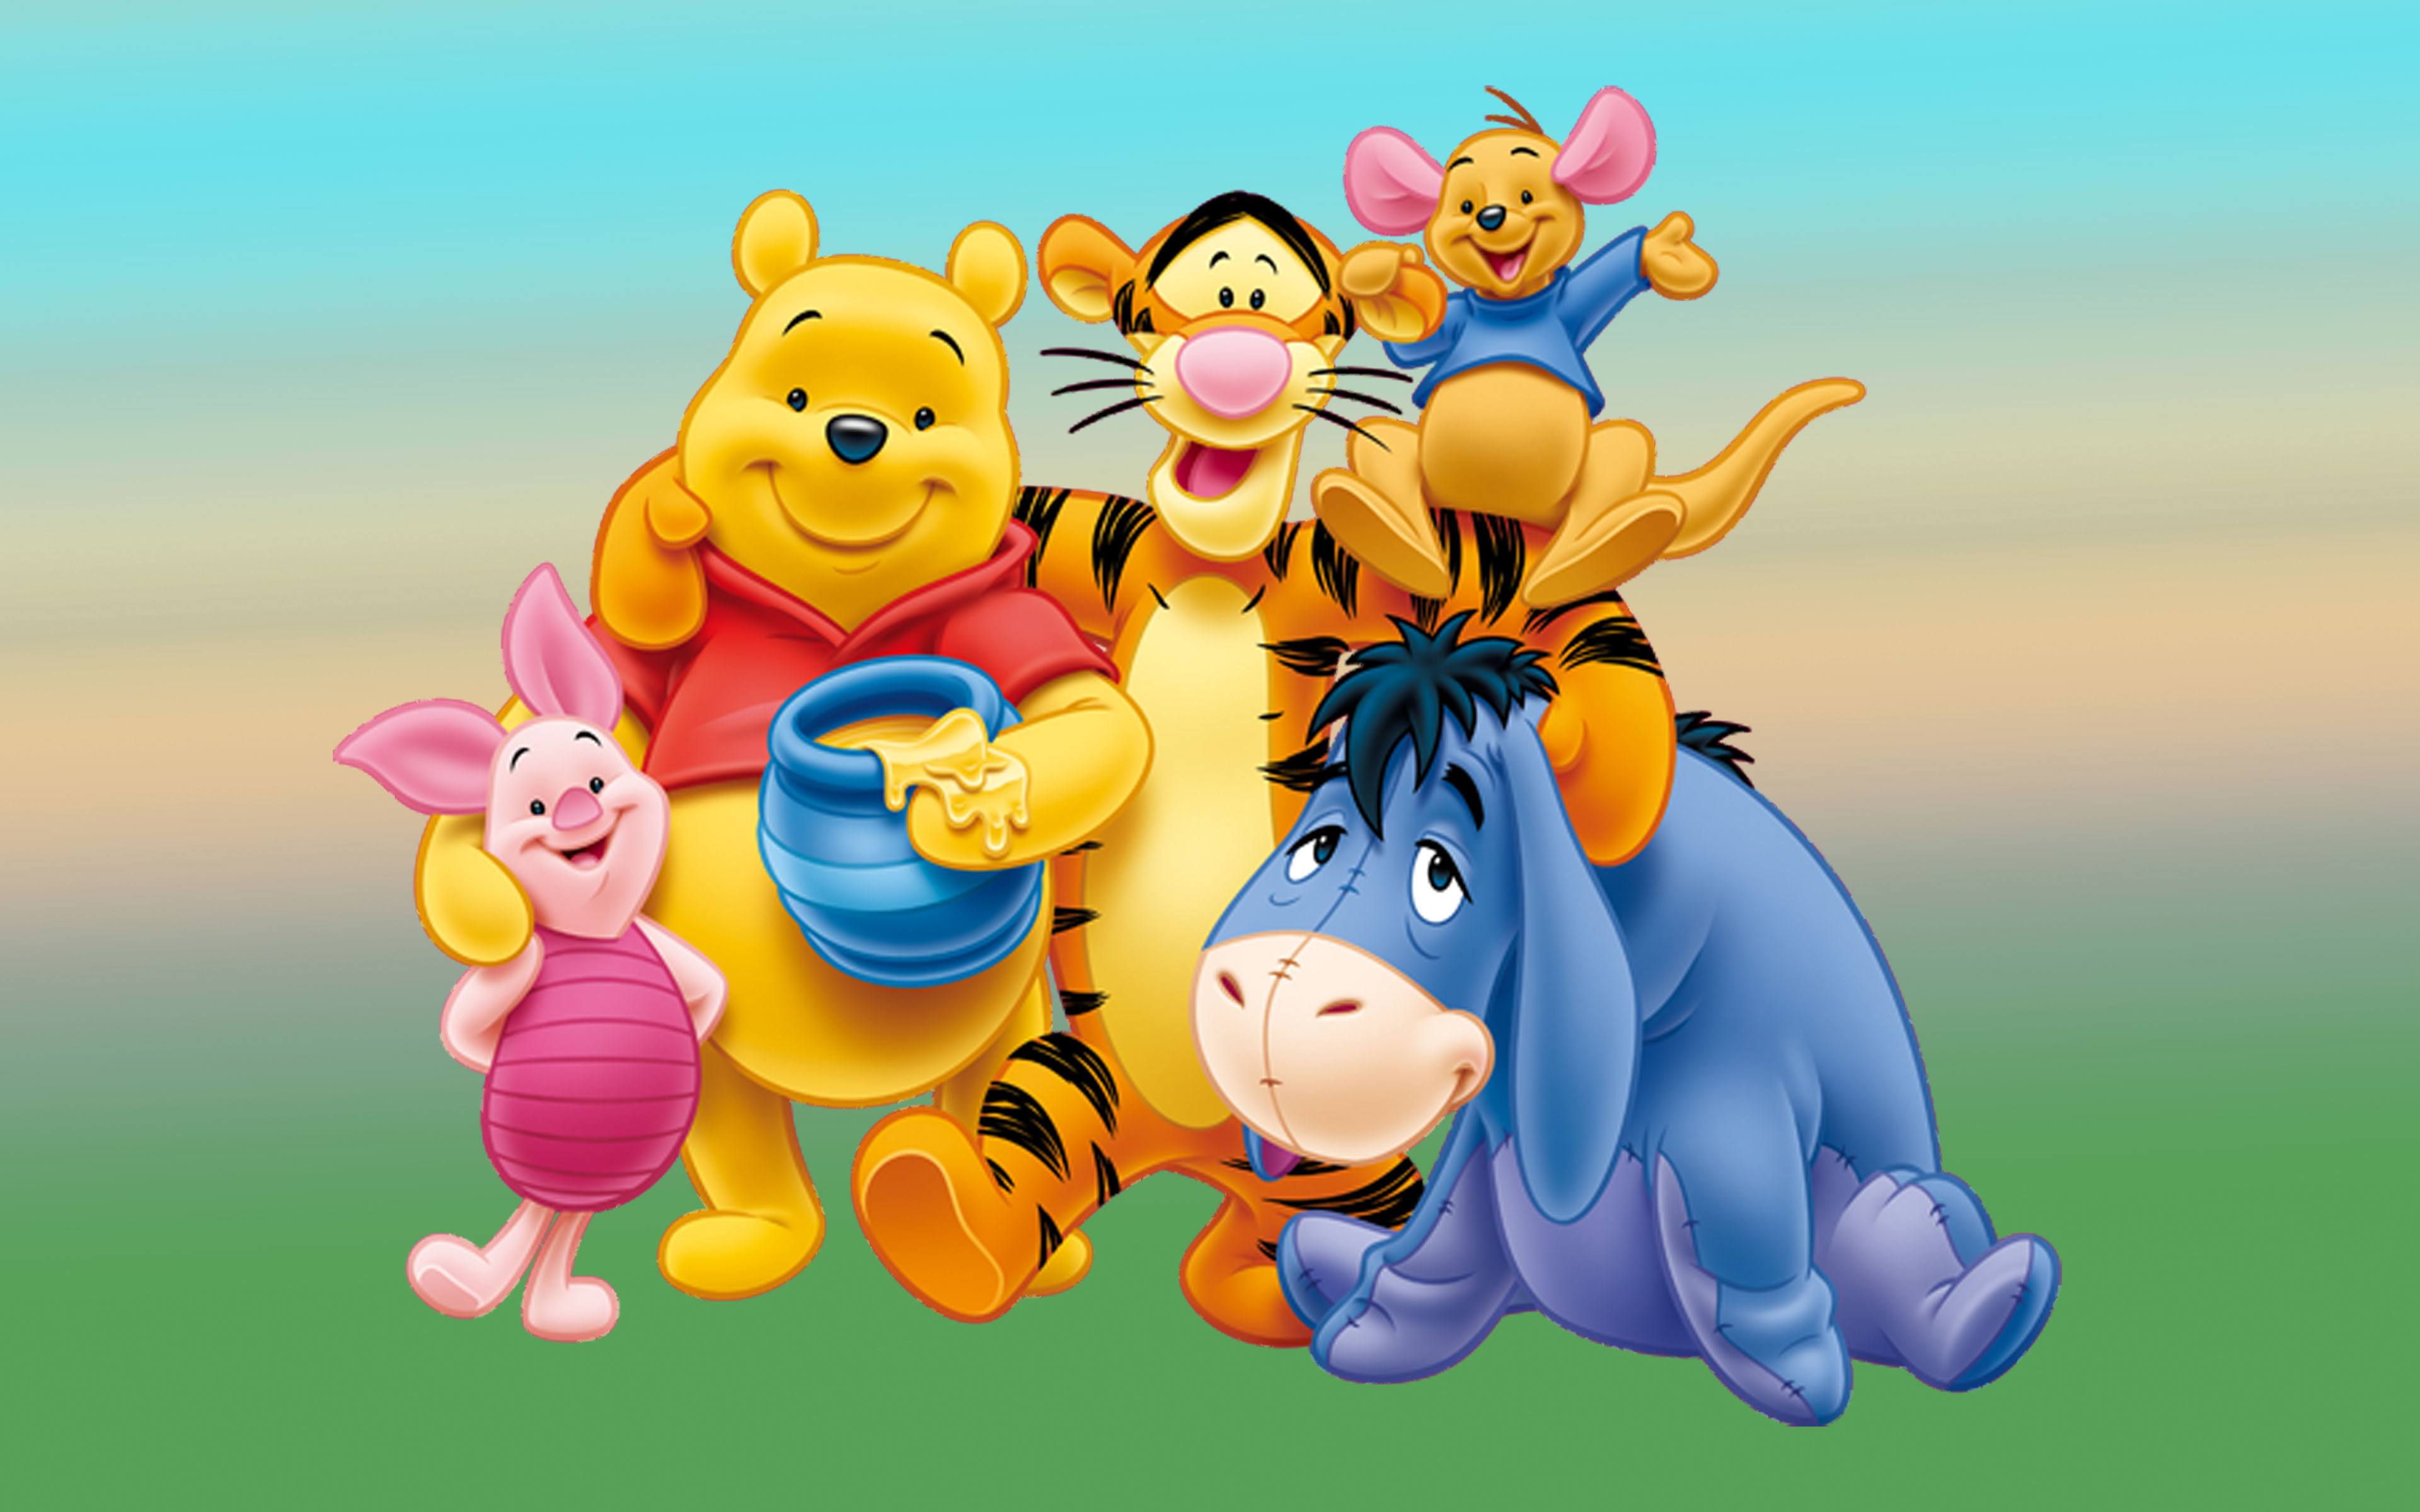 Hunting Iphone Wallpaper Winnie The Pooh Characters Image Desktop Hd Wallpaper For